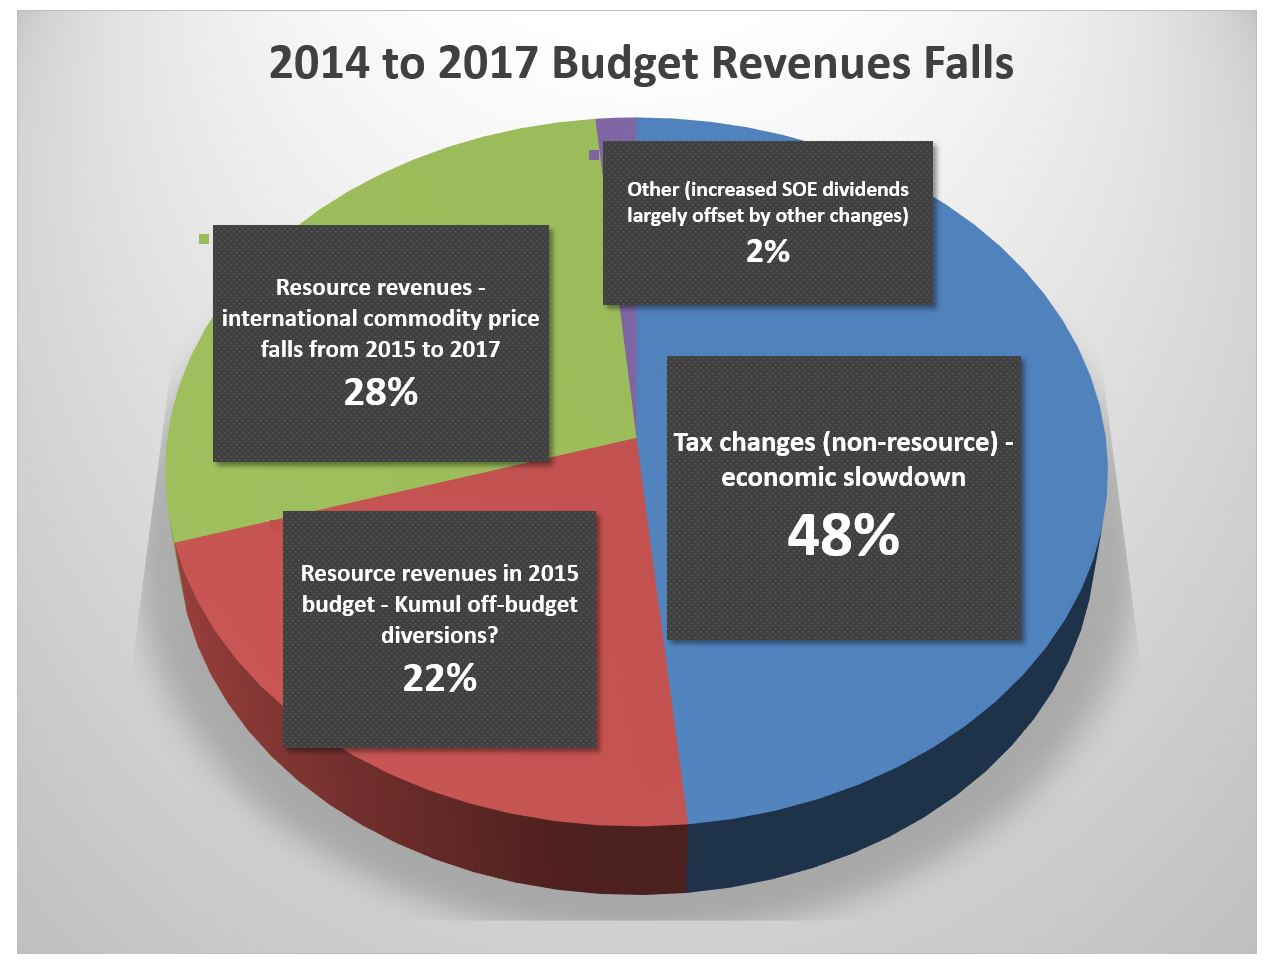 pngs-2014-to-2017-revenue-falls-pie-grahp